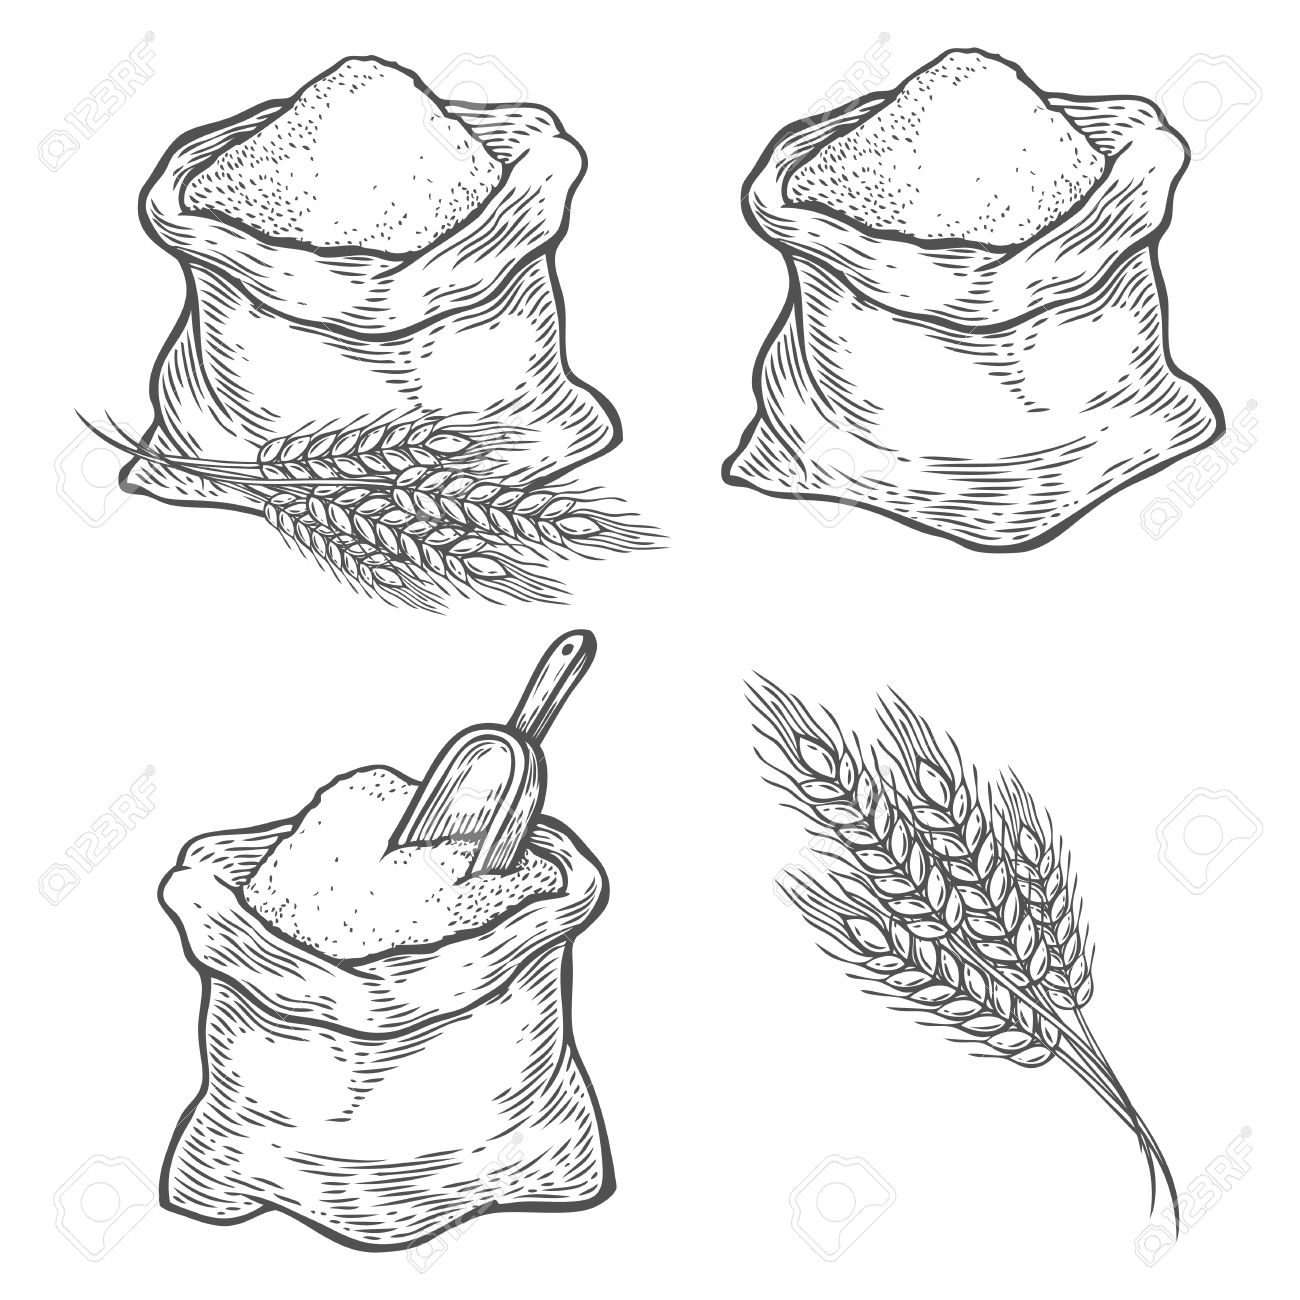 1300x1300 Sack With Whole Flour Or Sugar With Ear Wheat, Scoop. Hand Drawn